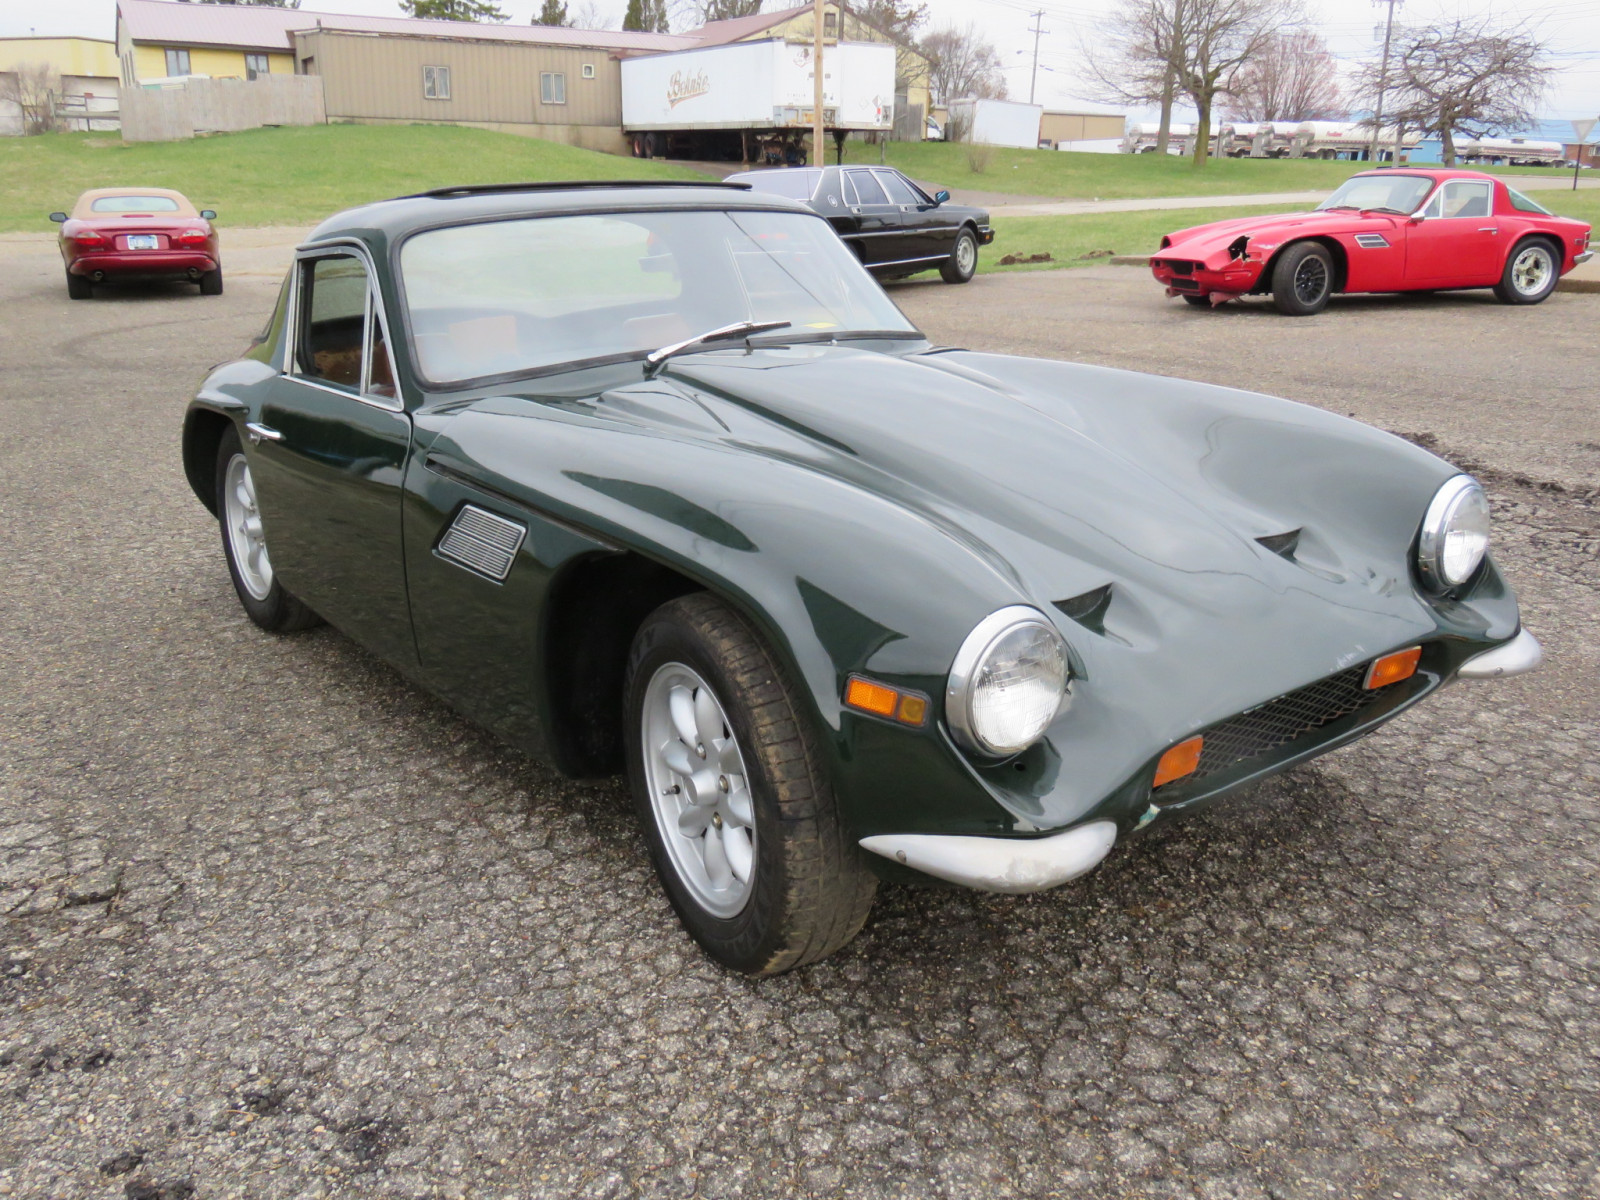 1972 TVR 2500M Coupe - Image 3